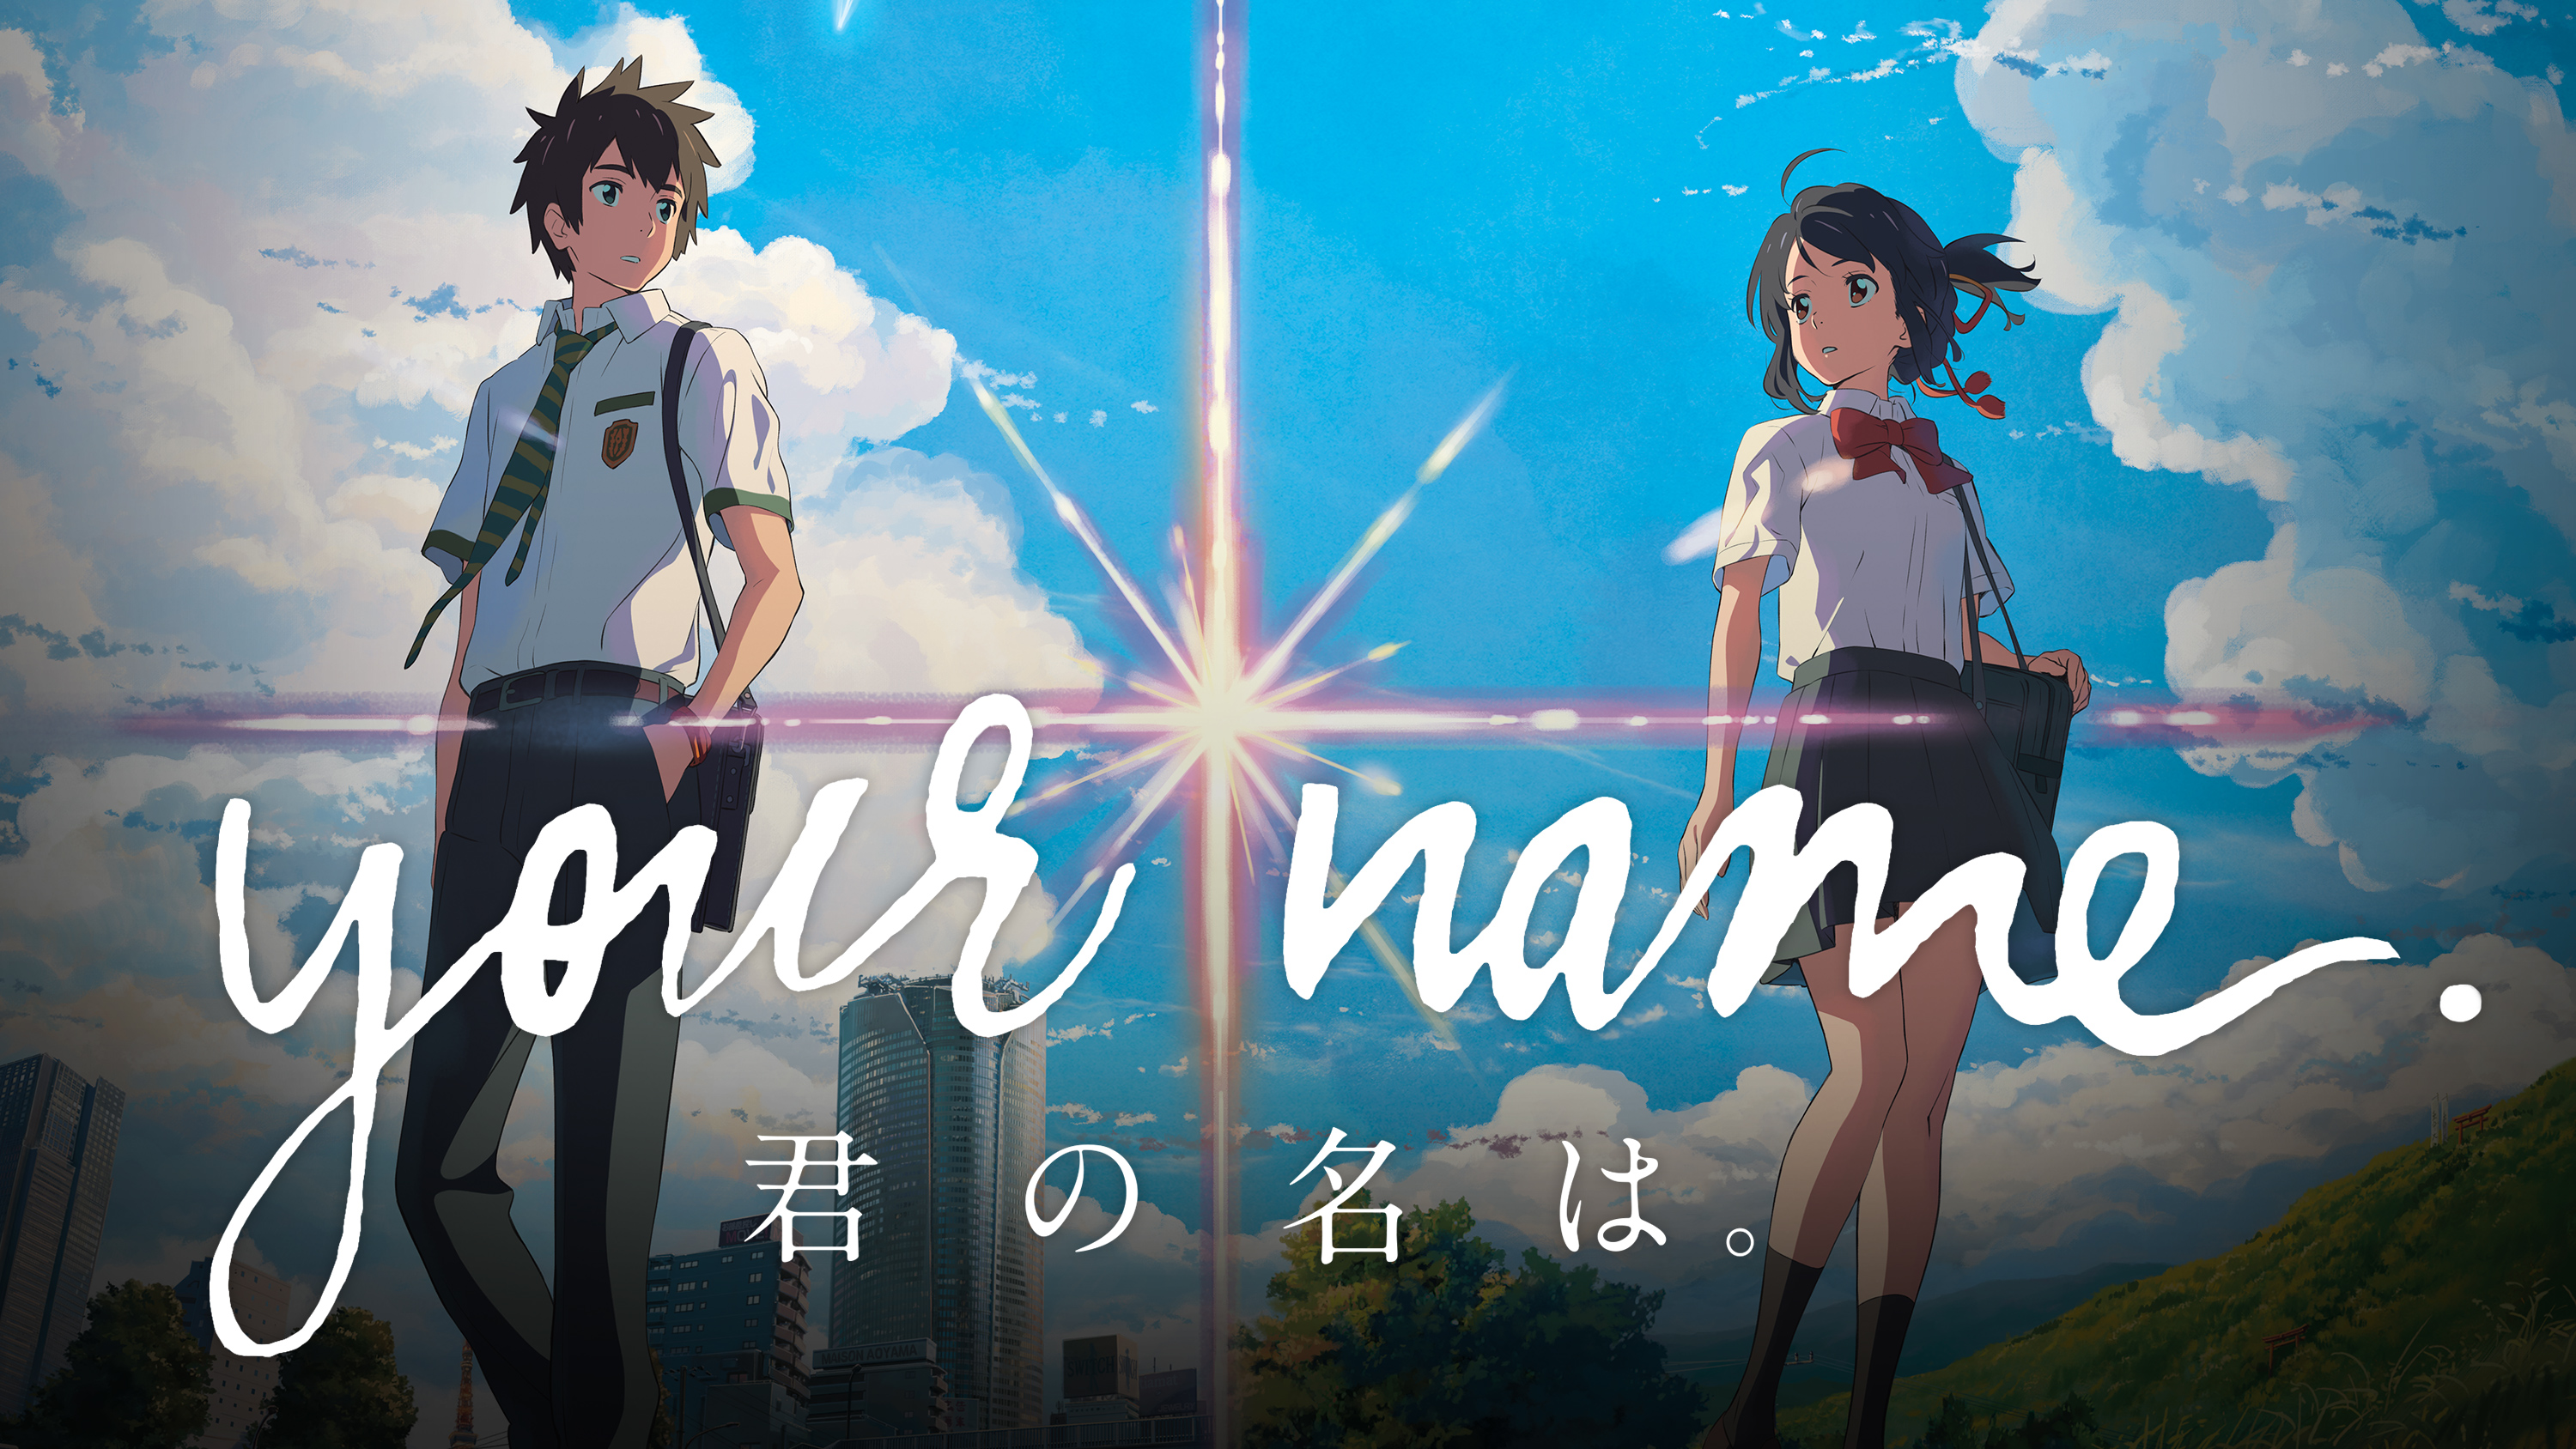 Your Name Anime Full Movie